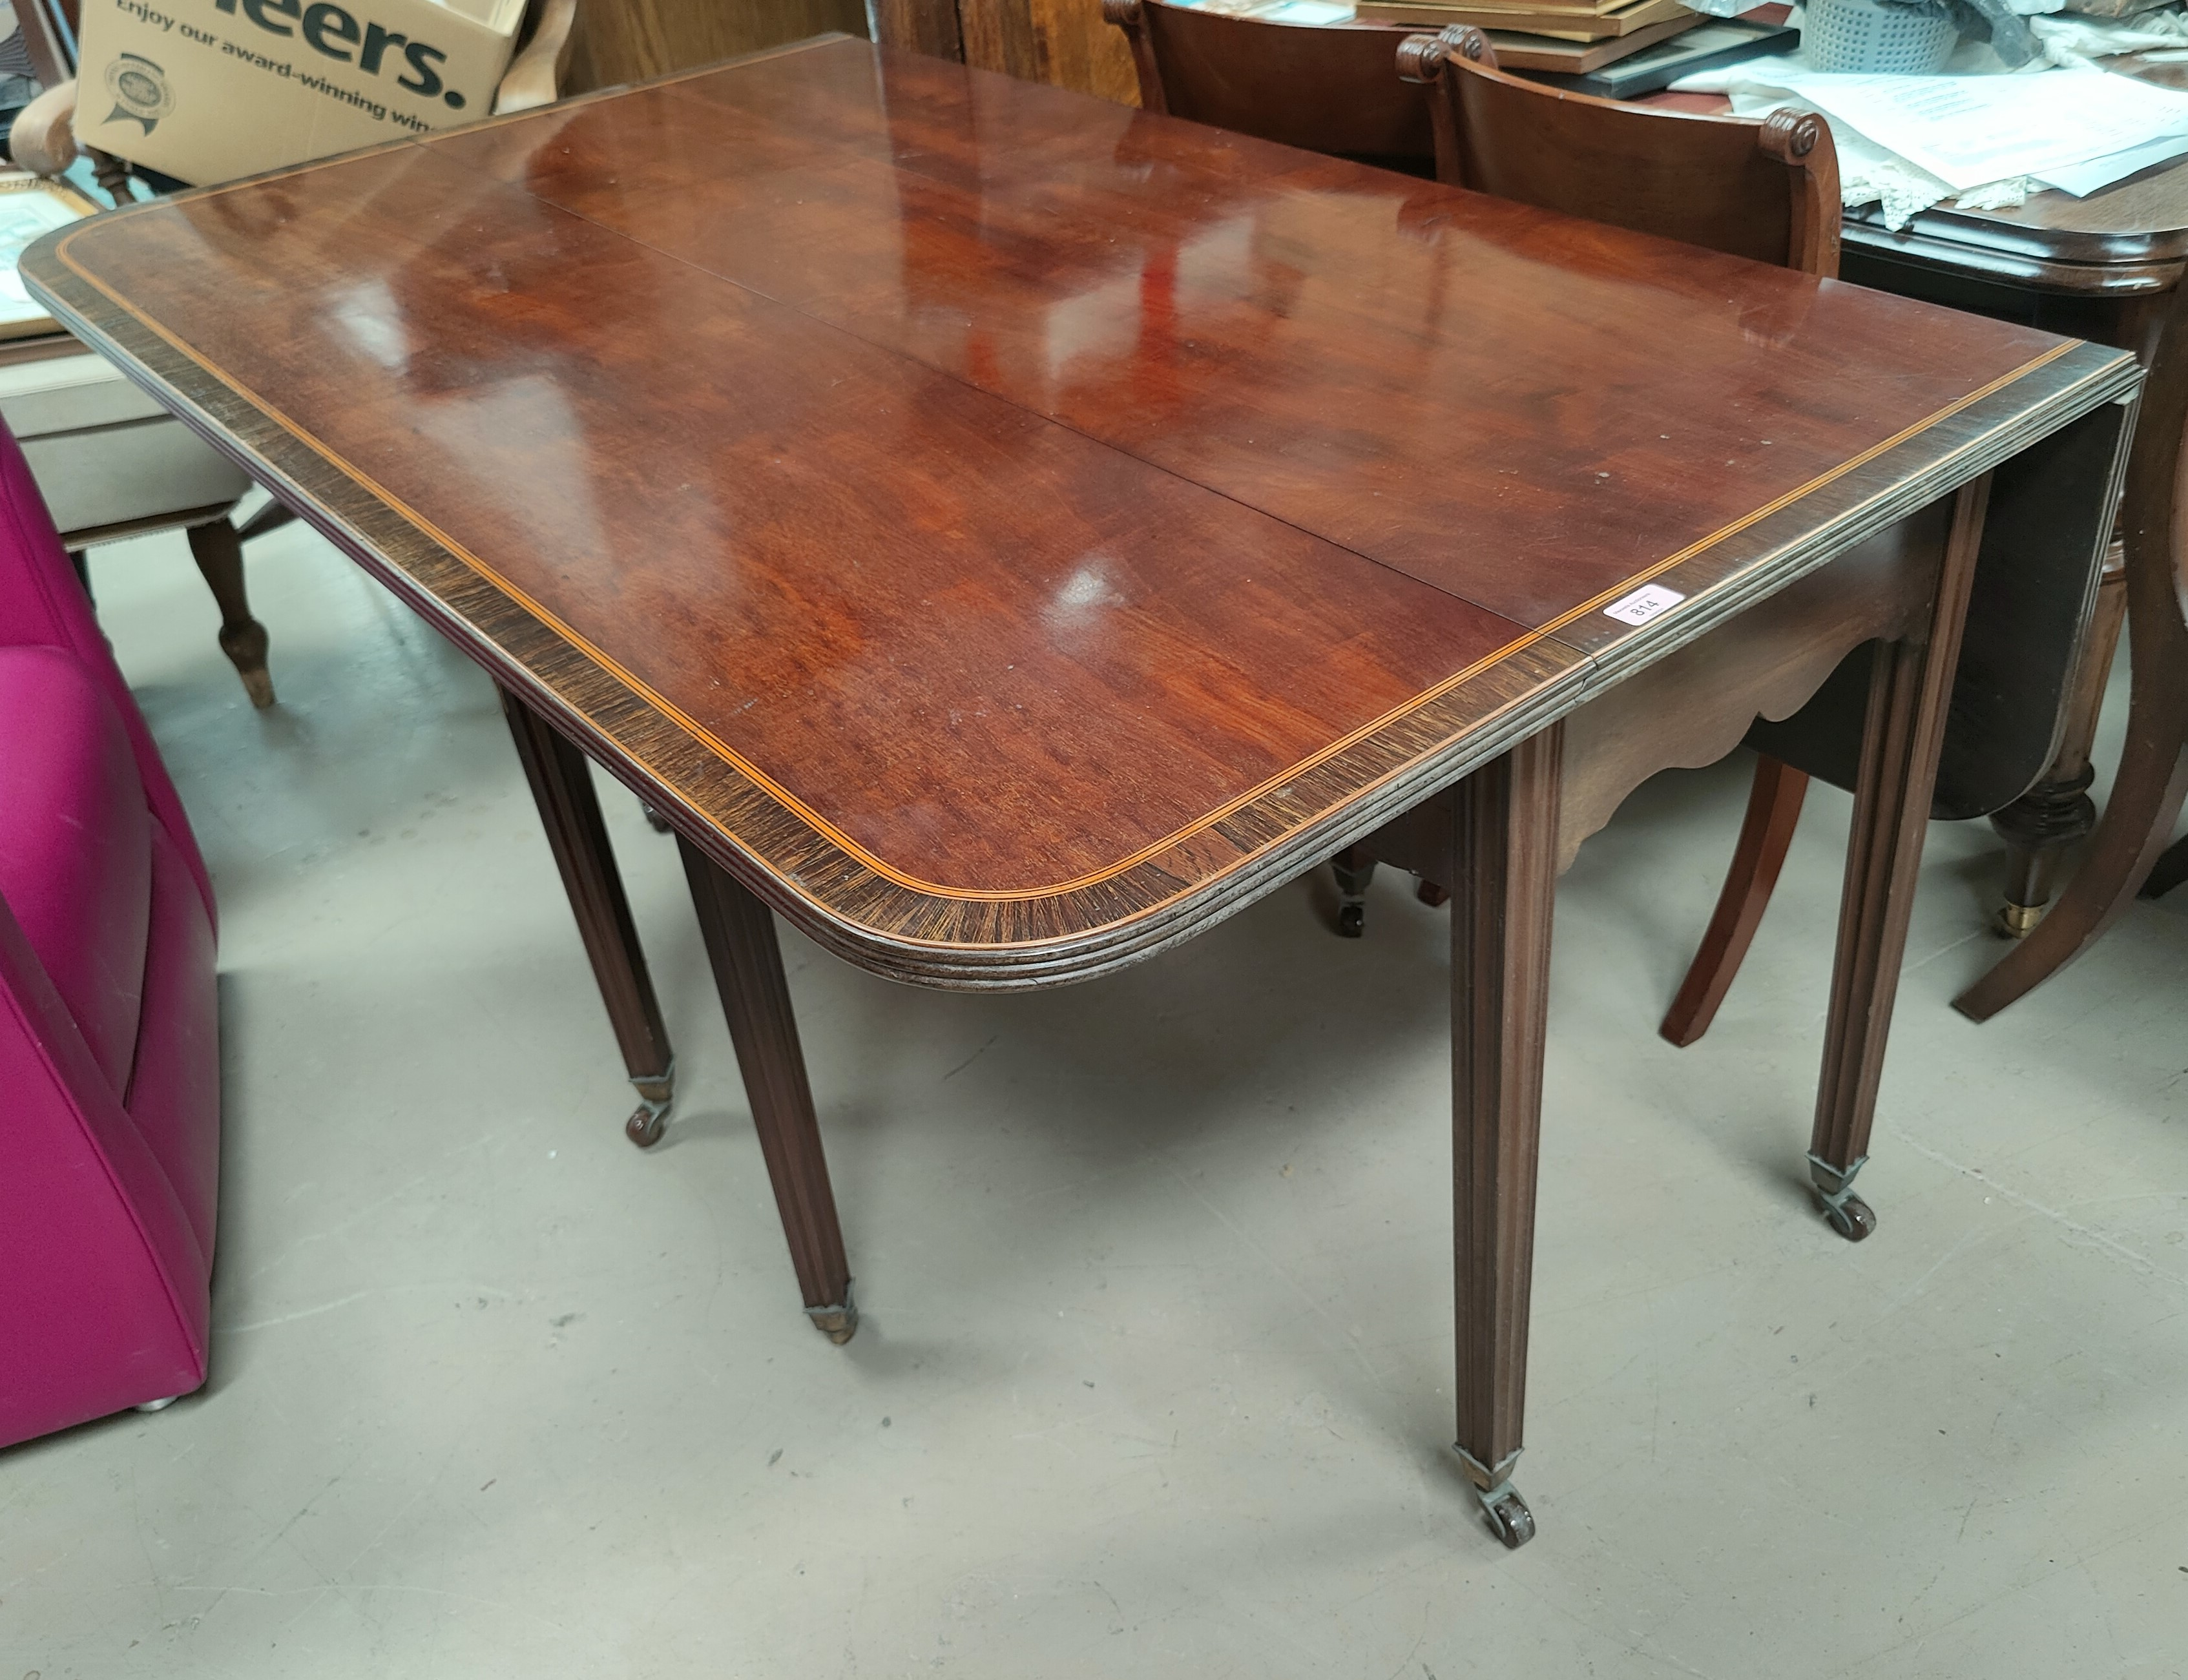 An early 19th Century spider leg dining table, plum pudding mahogany with coromandel crossbanding, - Image 3 of 3